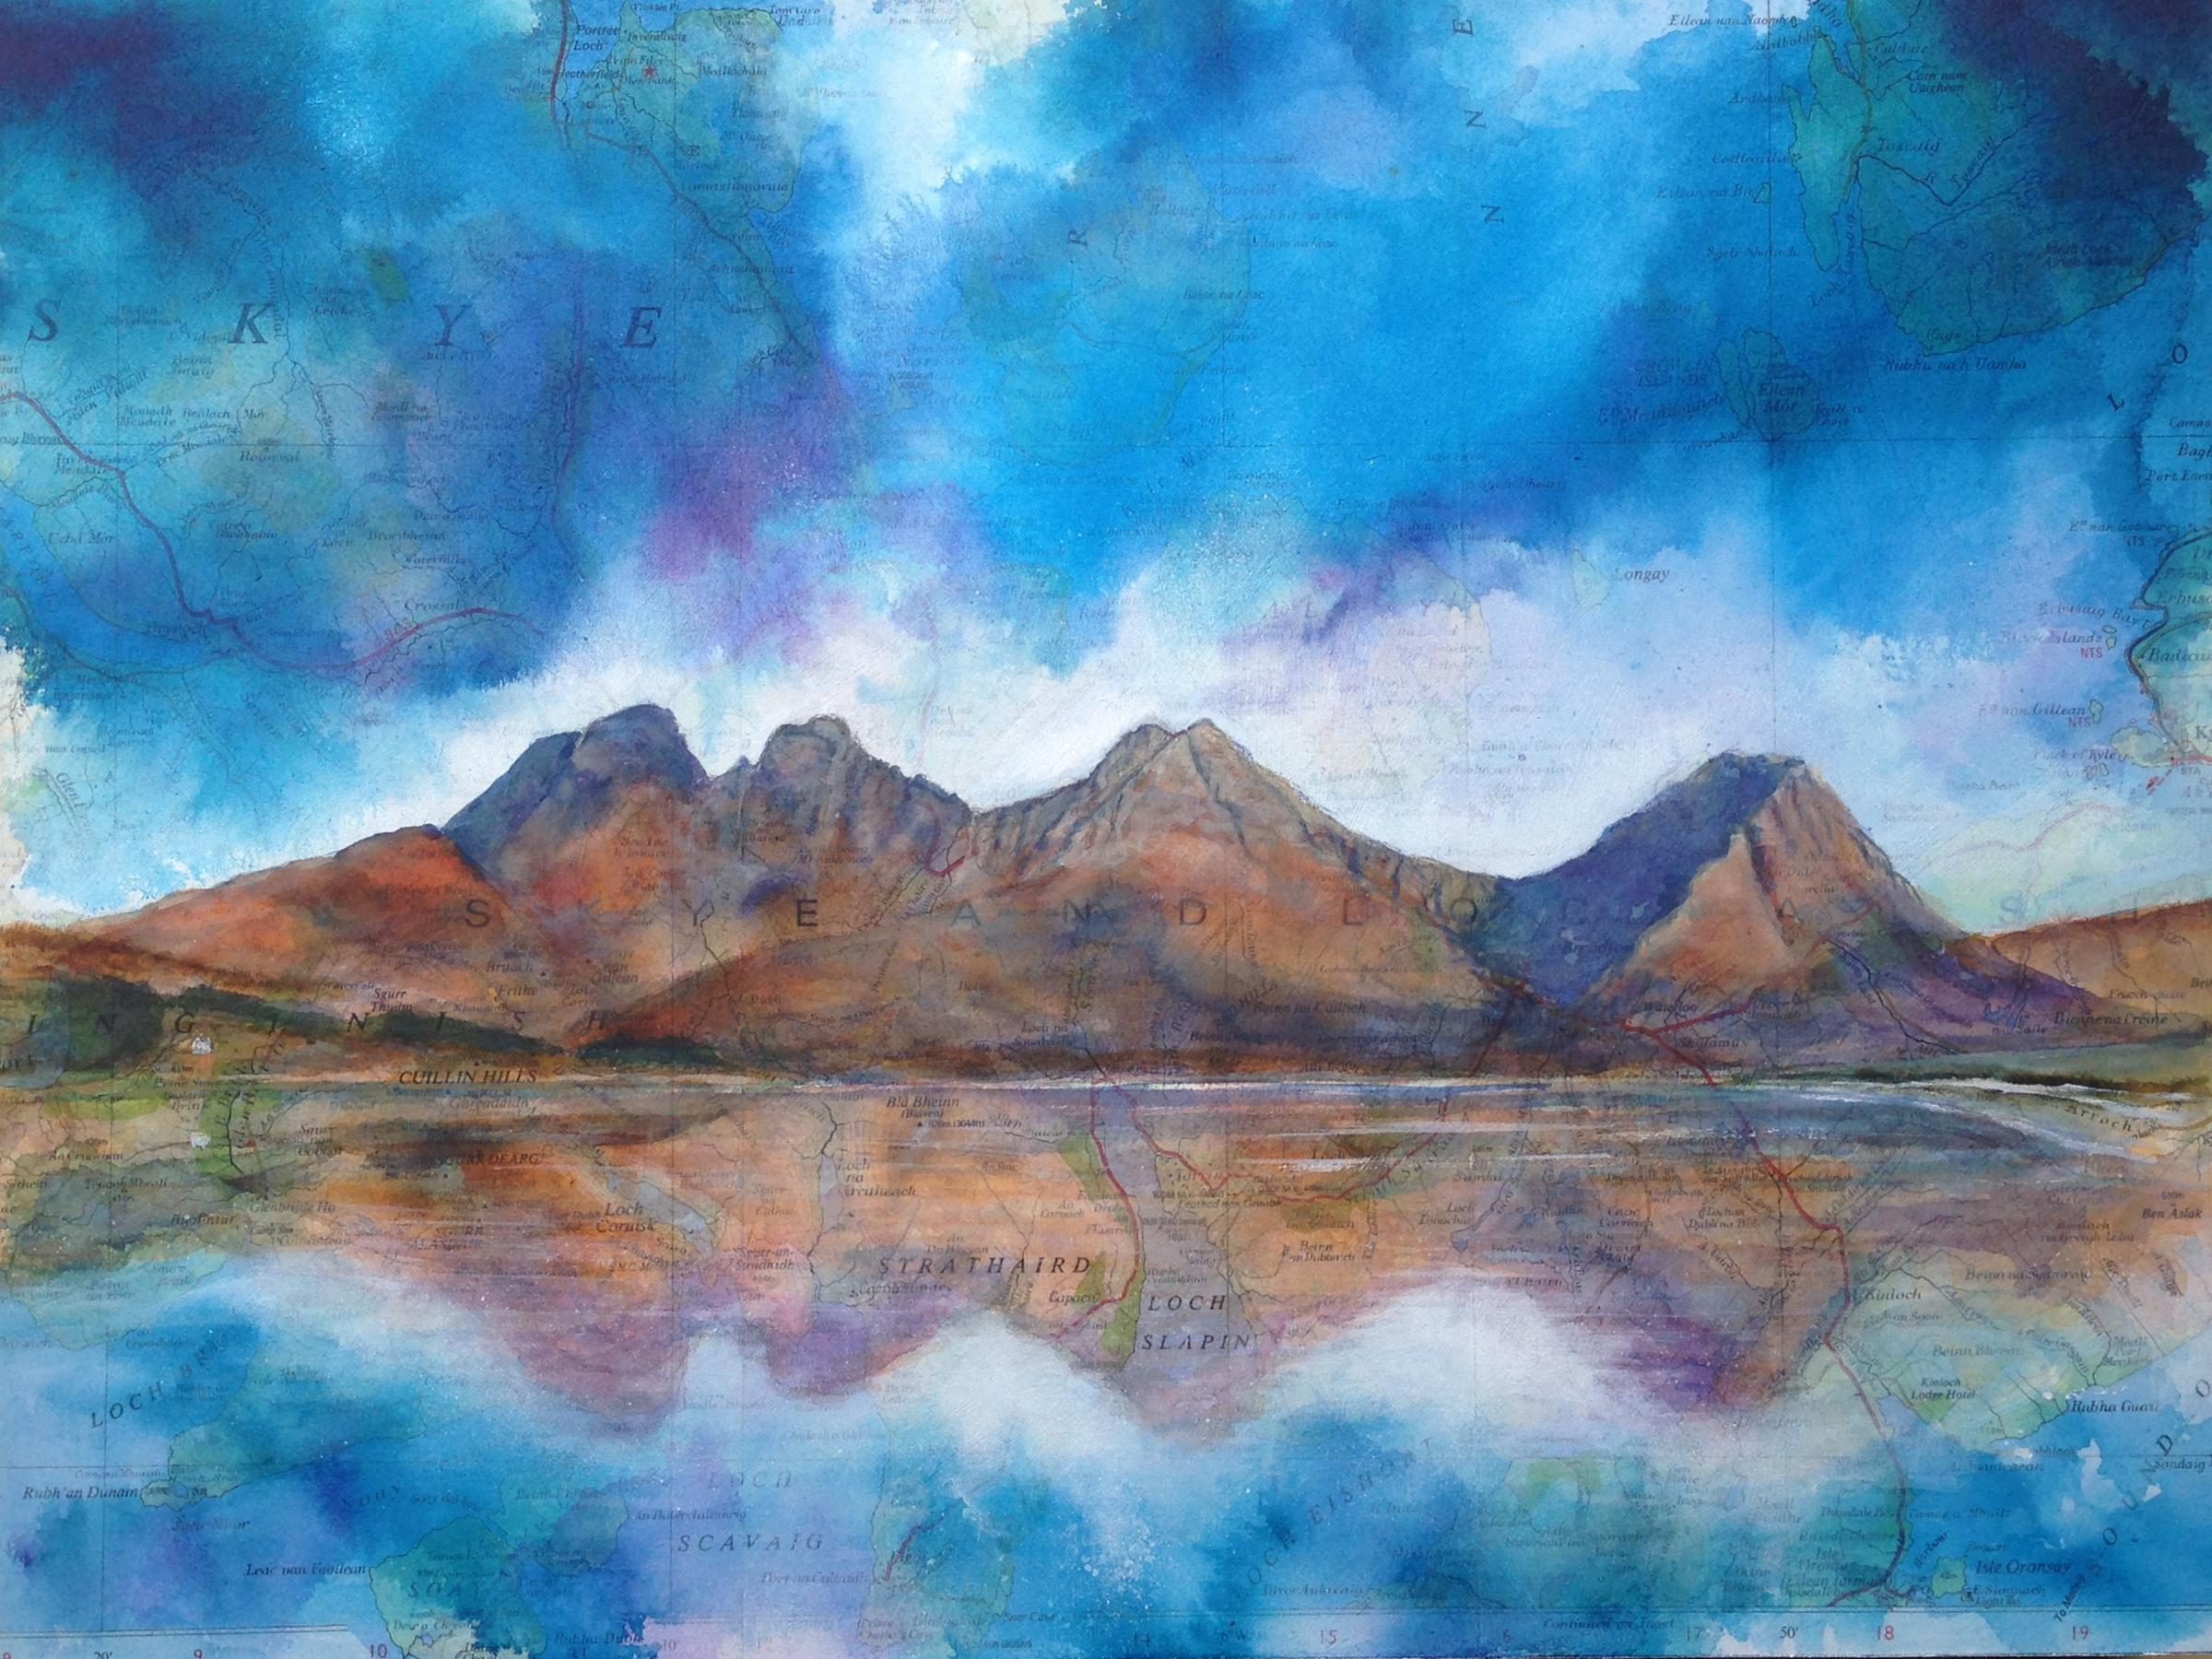 Blaven, Isle of Skye, by artist Jenny Mclaren, who will be exhibiting her artwork at the Kendal Mountain Literature Festival